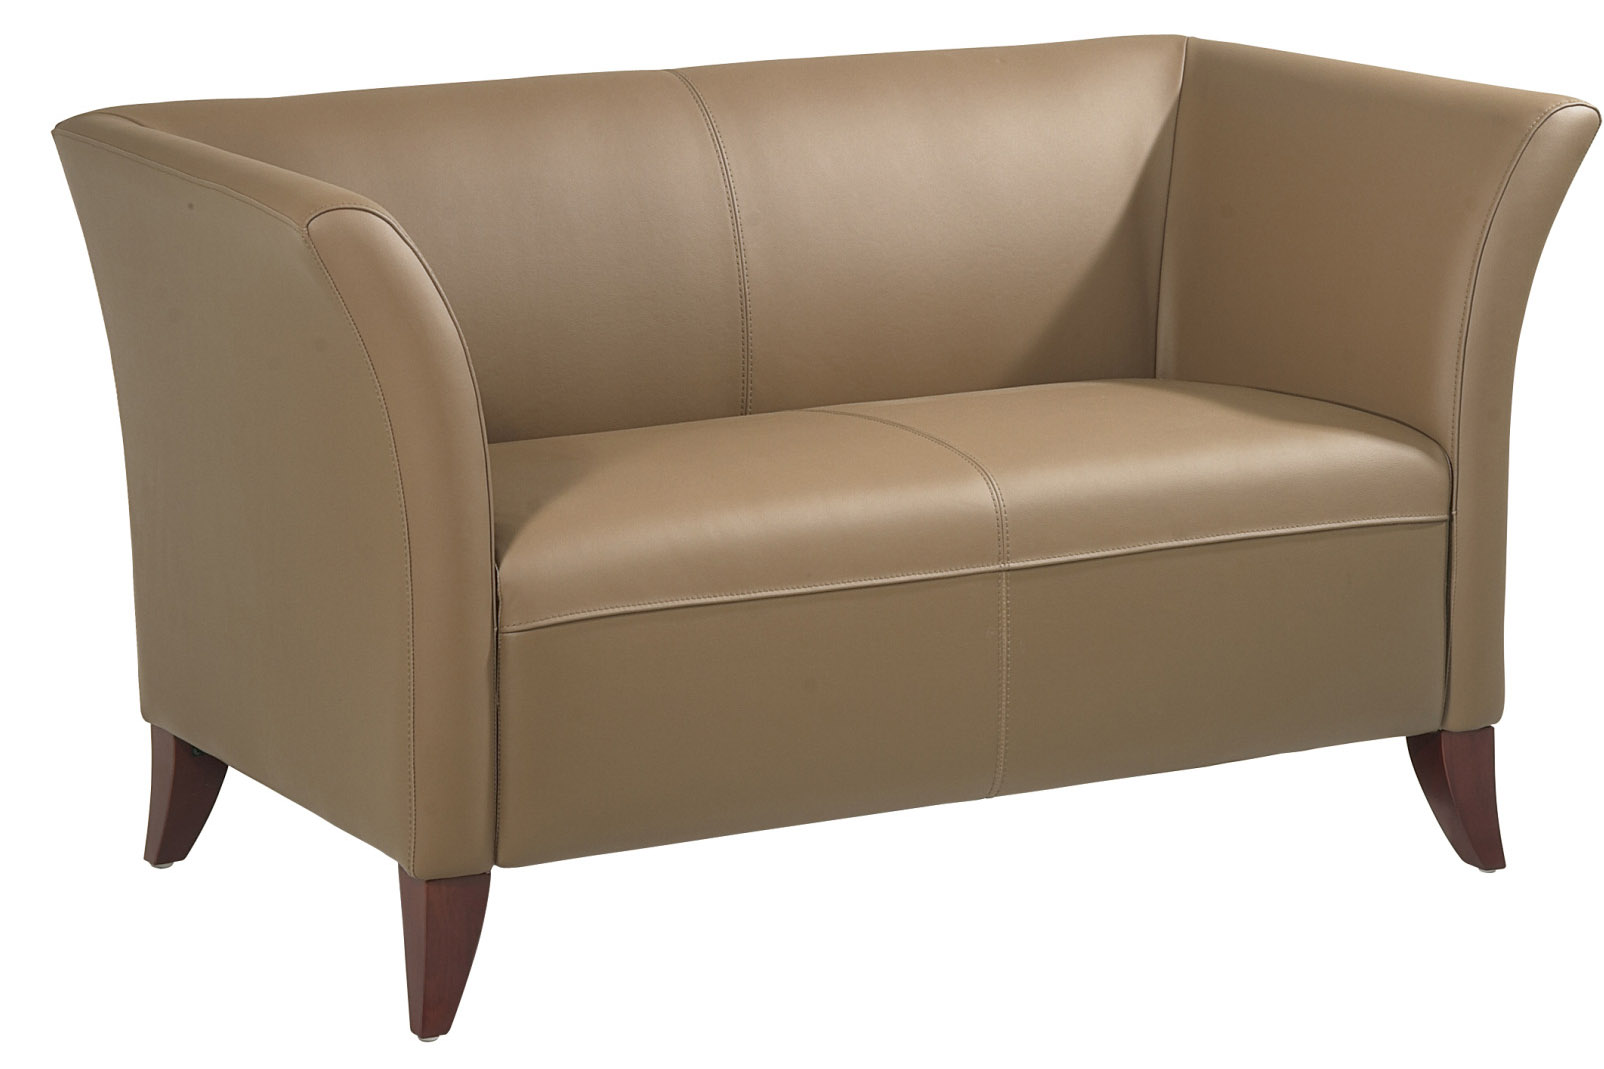 office club chairs target outdoor dining star sl1871 taupe leather chair sl15 series faux loveseat